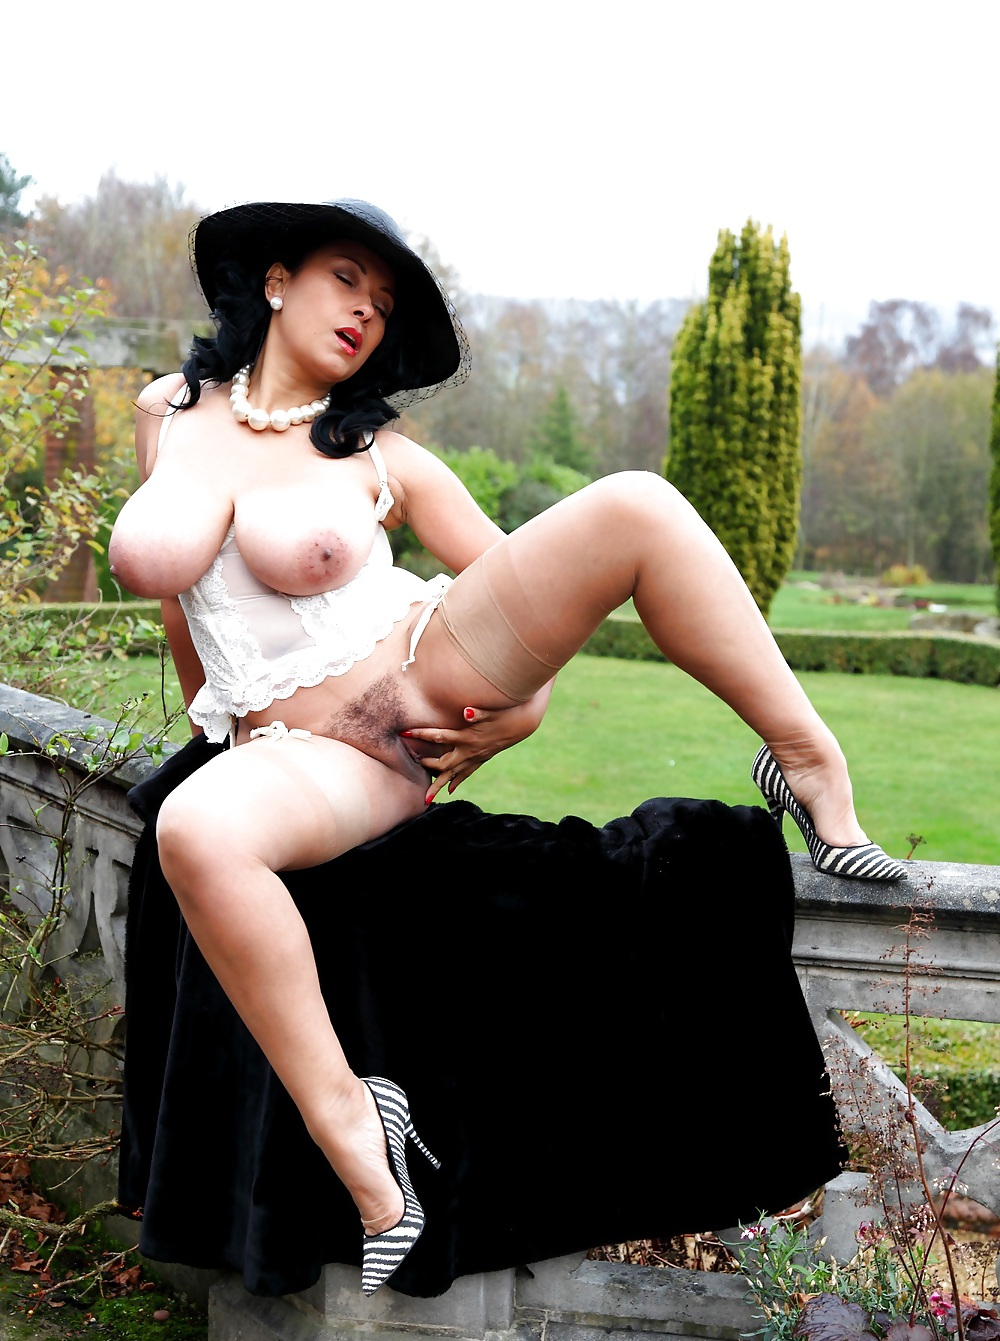 Nude pictures of big lady 11